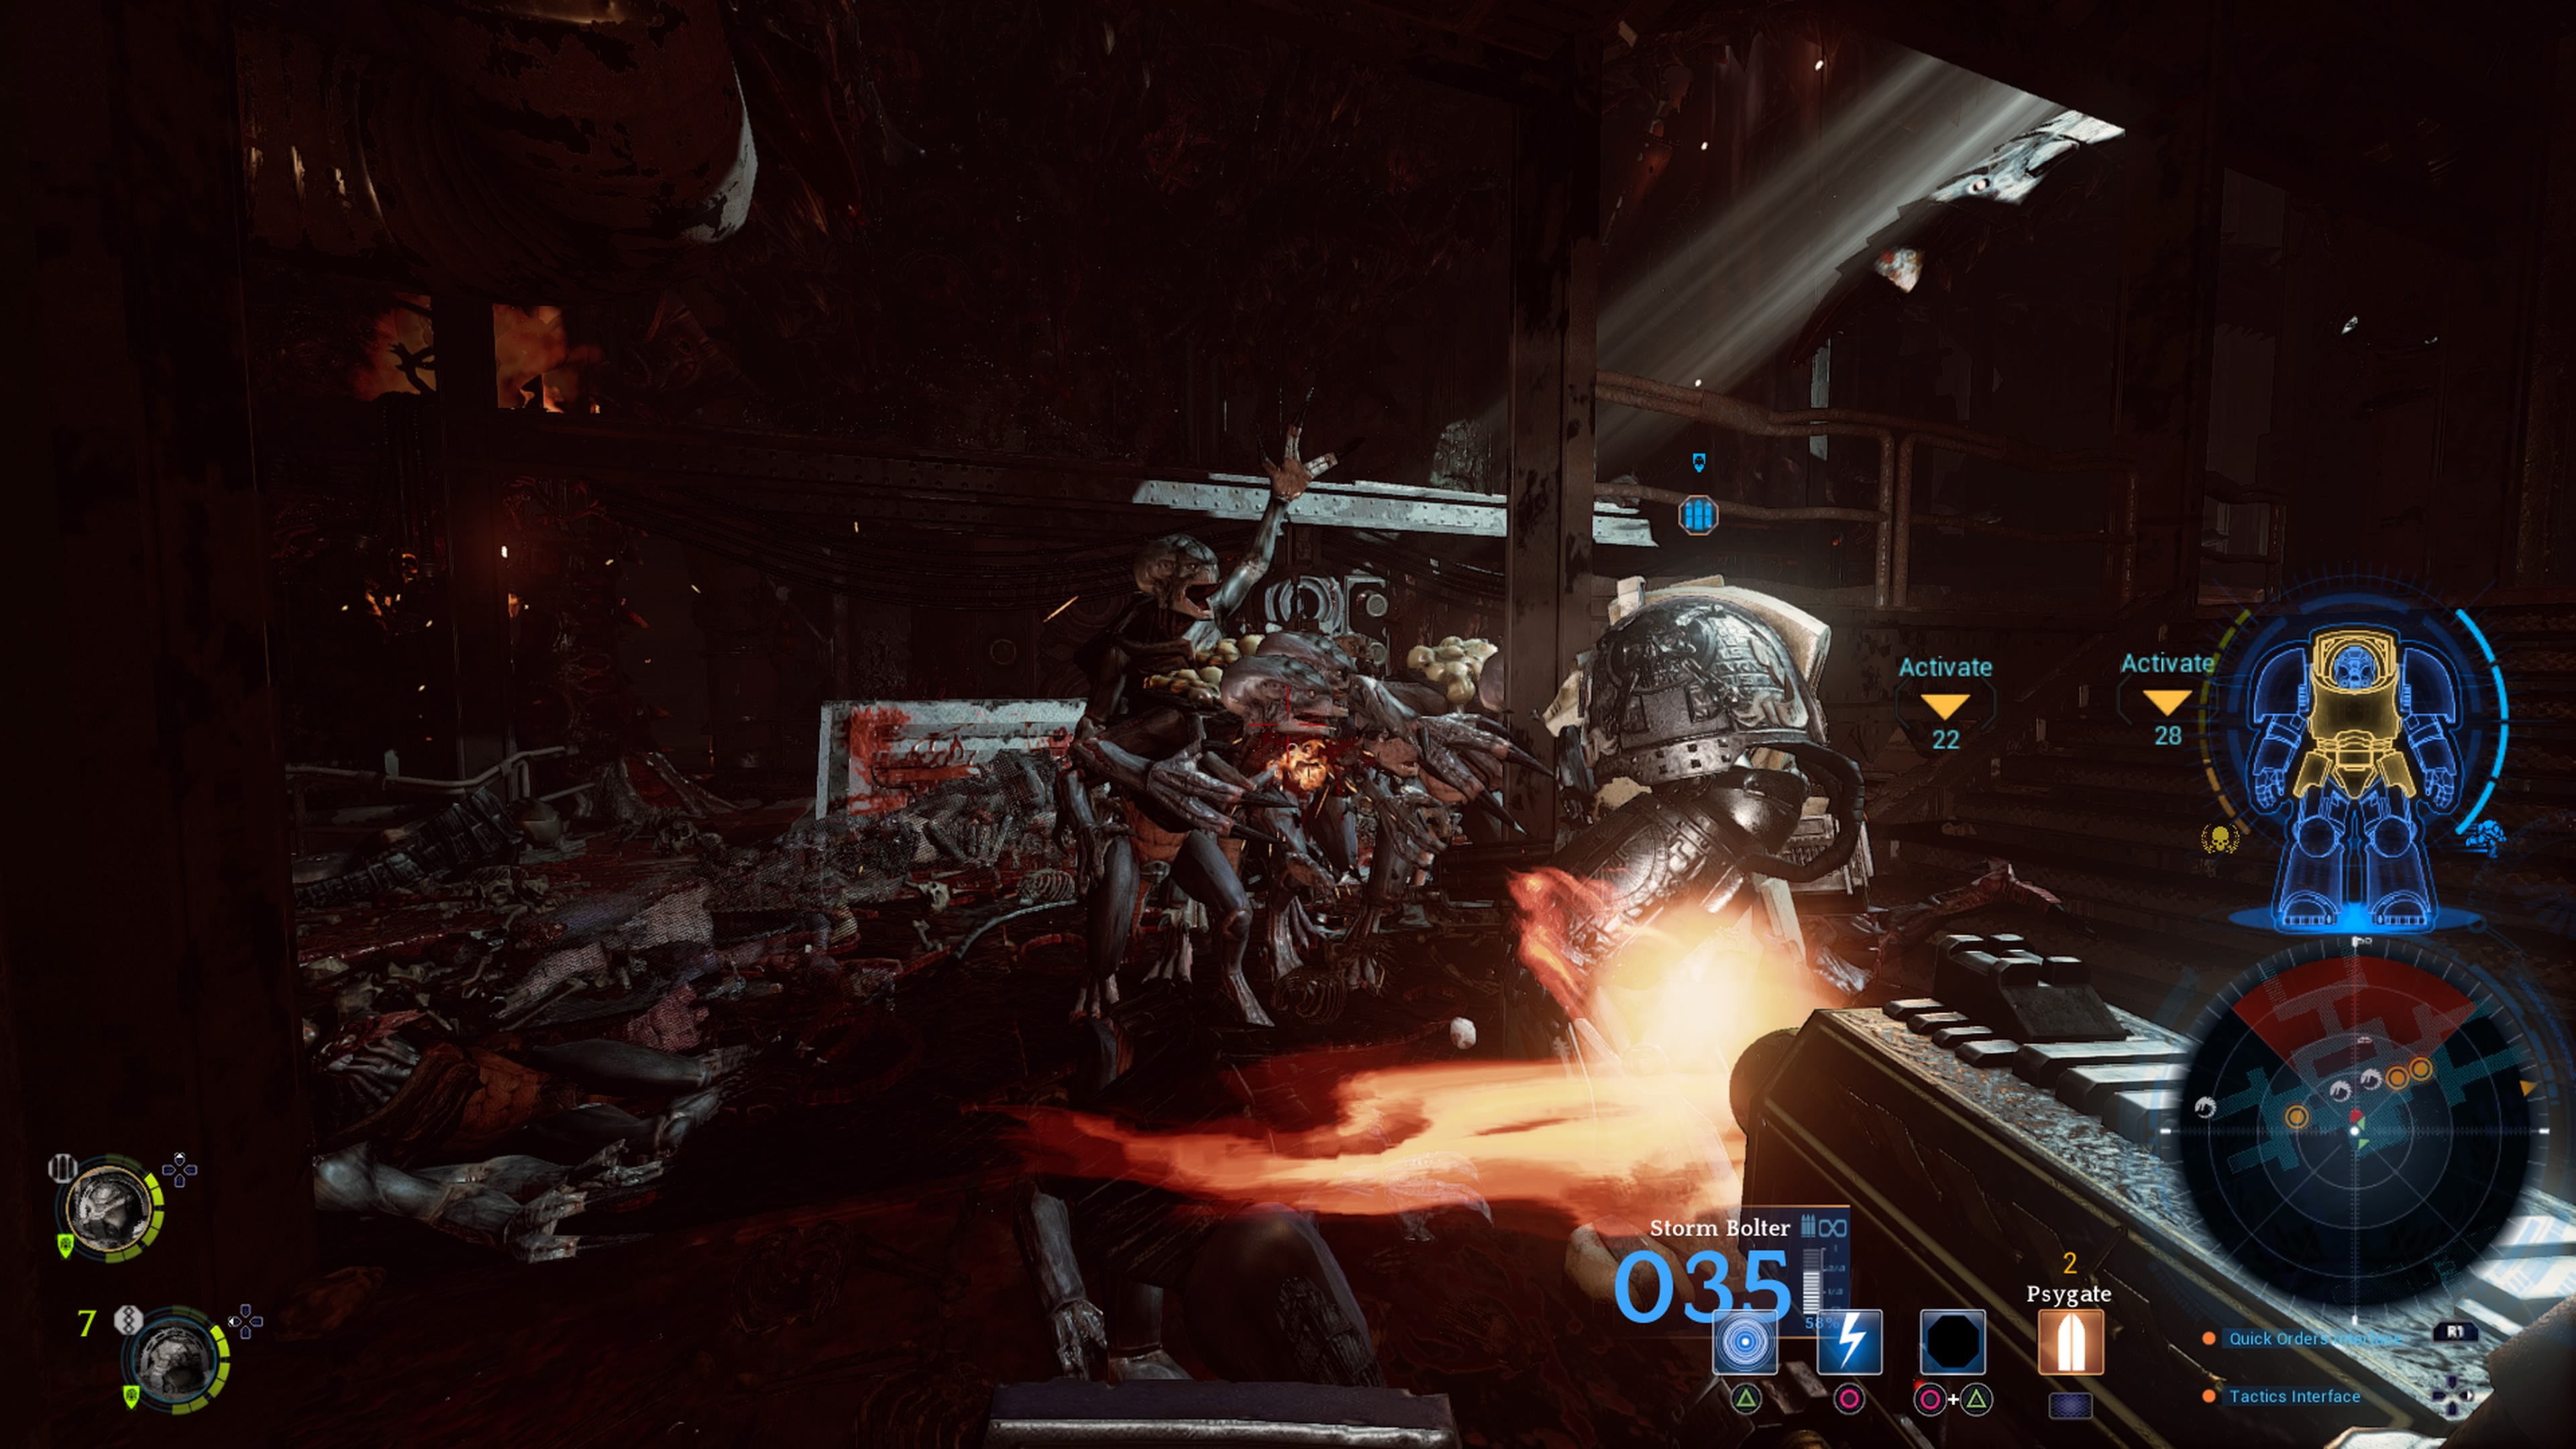 Game Hype - Space Hulk: Deathwing